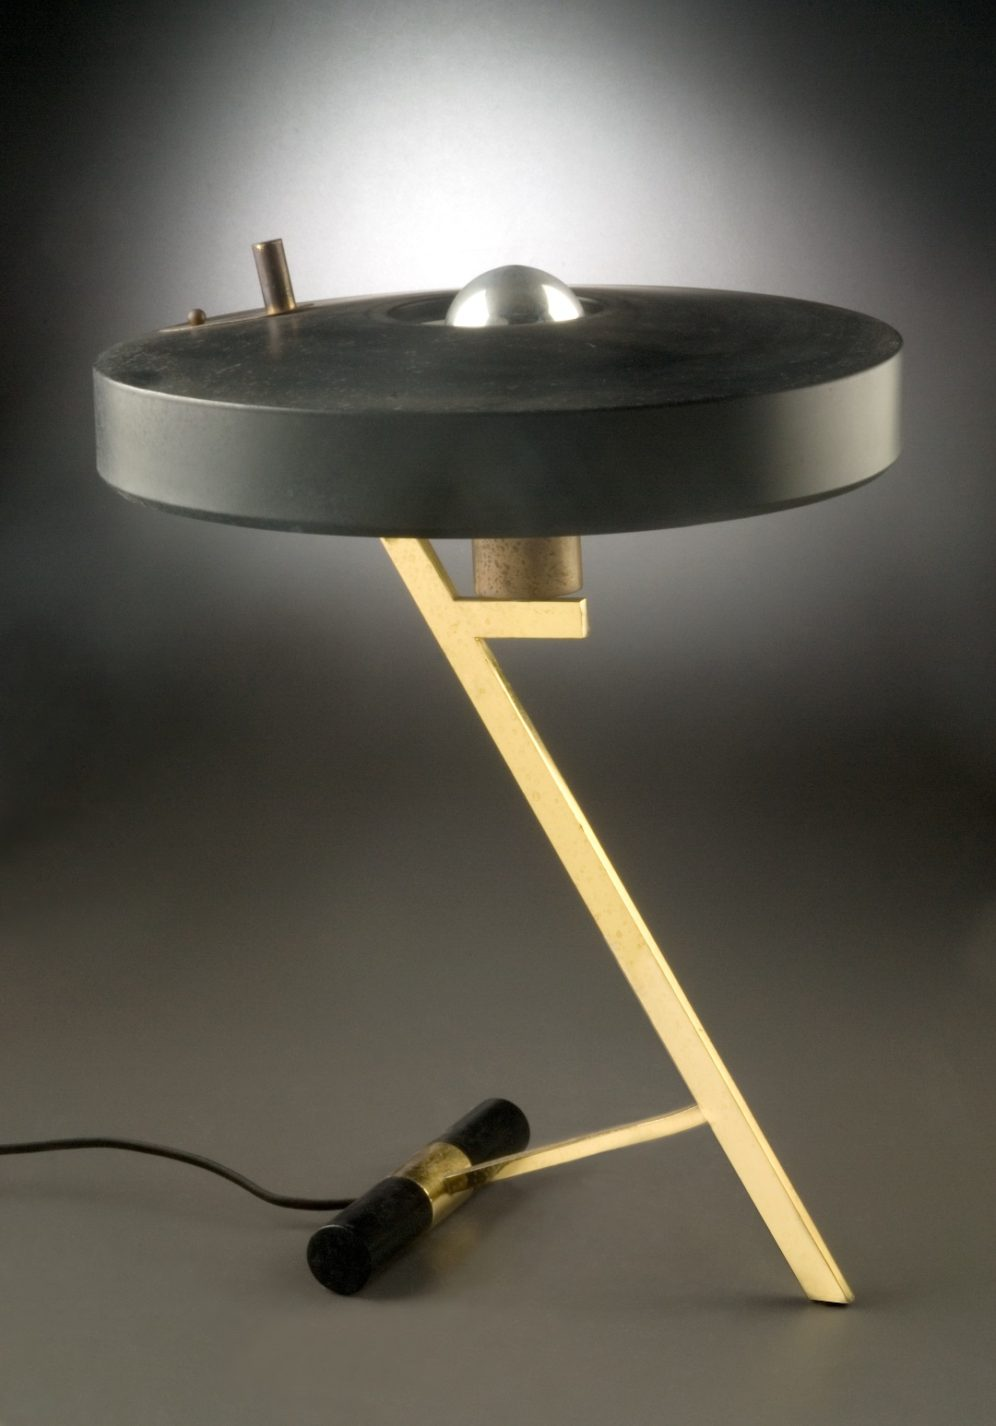 Table lamp with angled brass shaft and shallow cylindrical black aluminum shade.